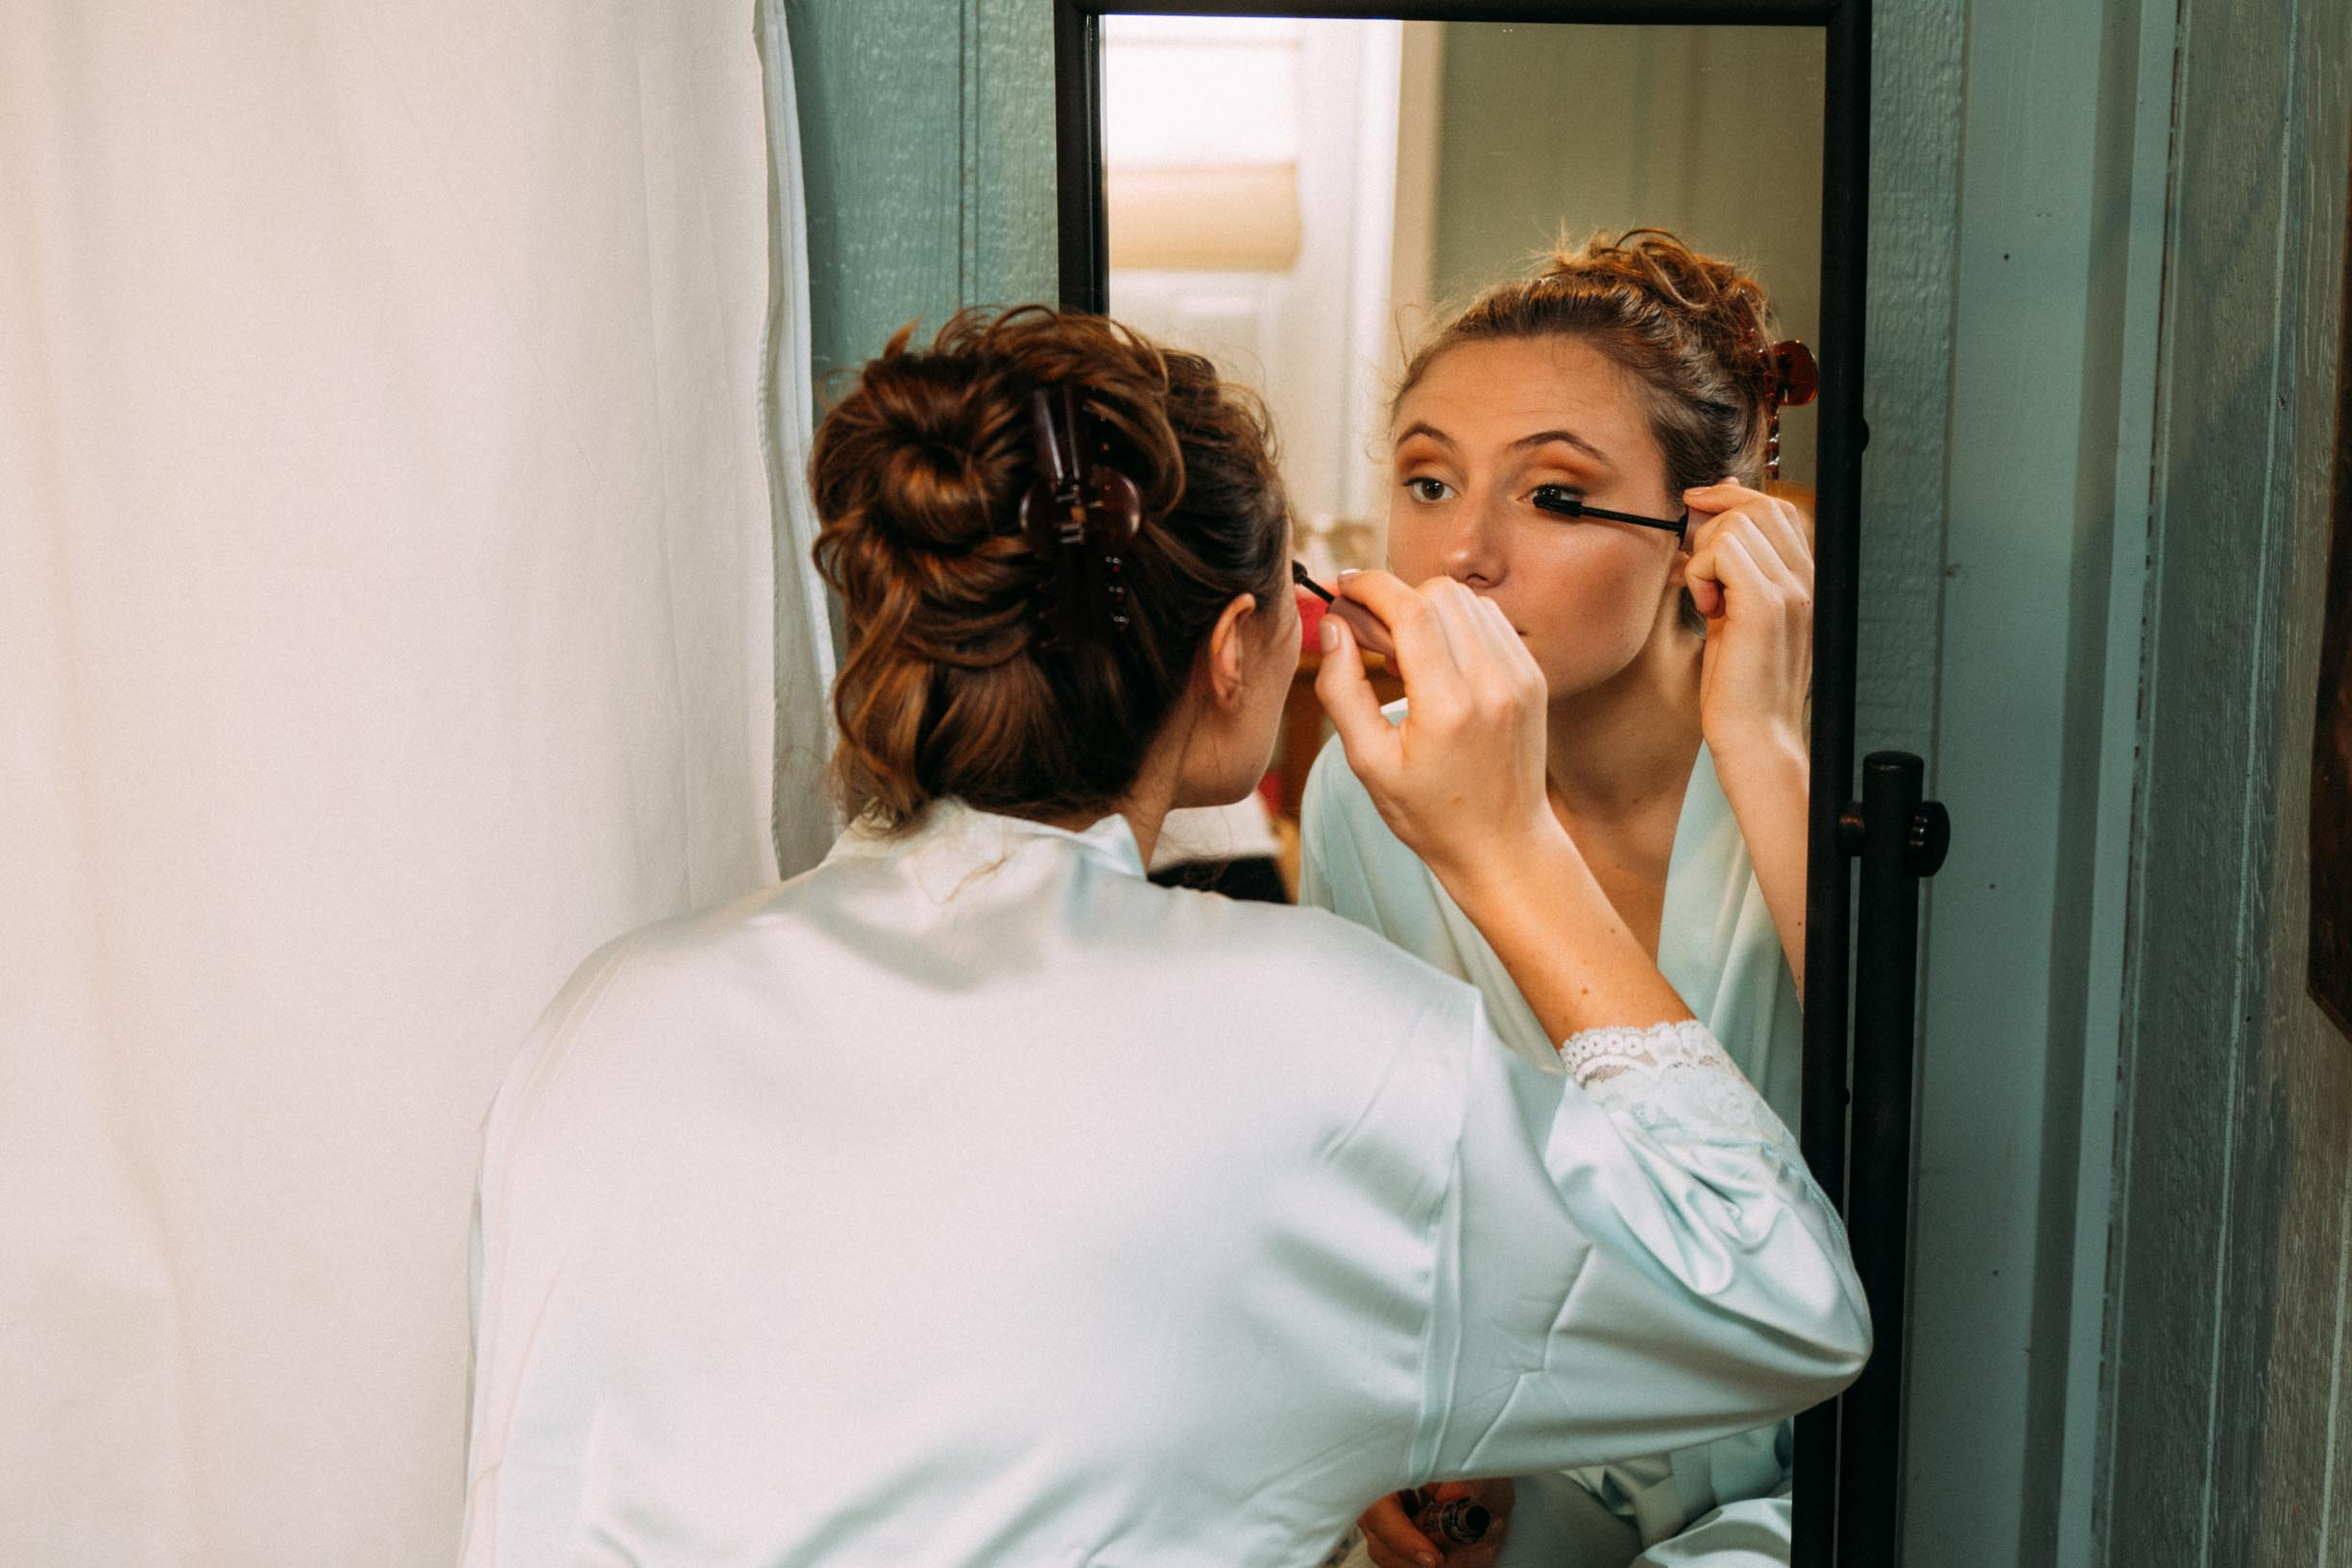 Sarah_Andy_Getting_Ready_Portraits_03.jpg